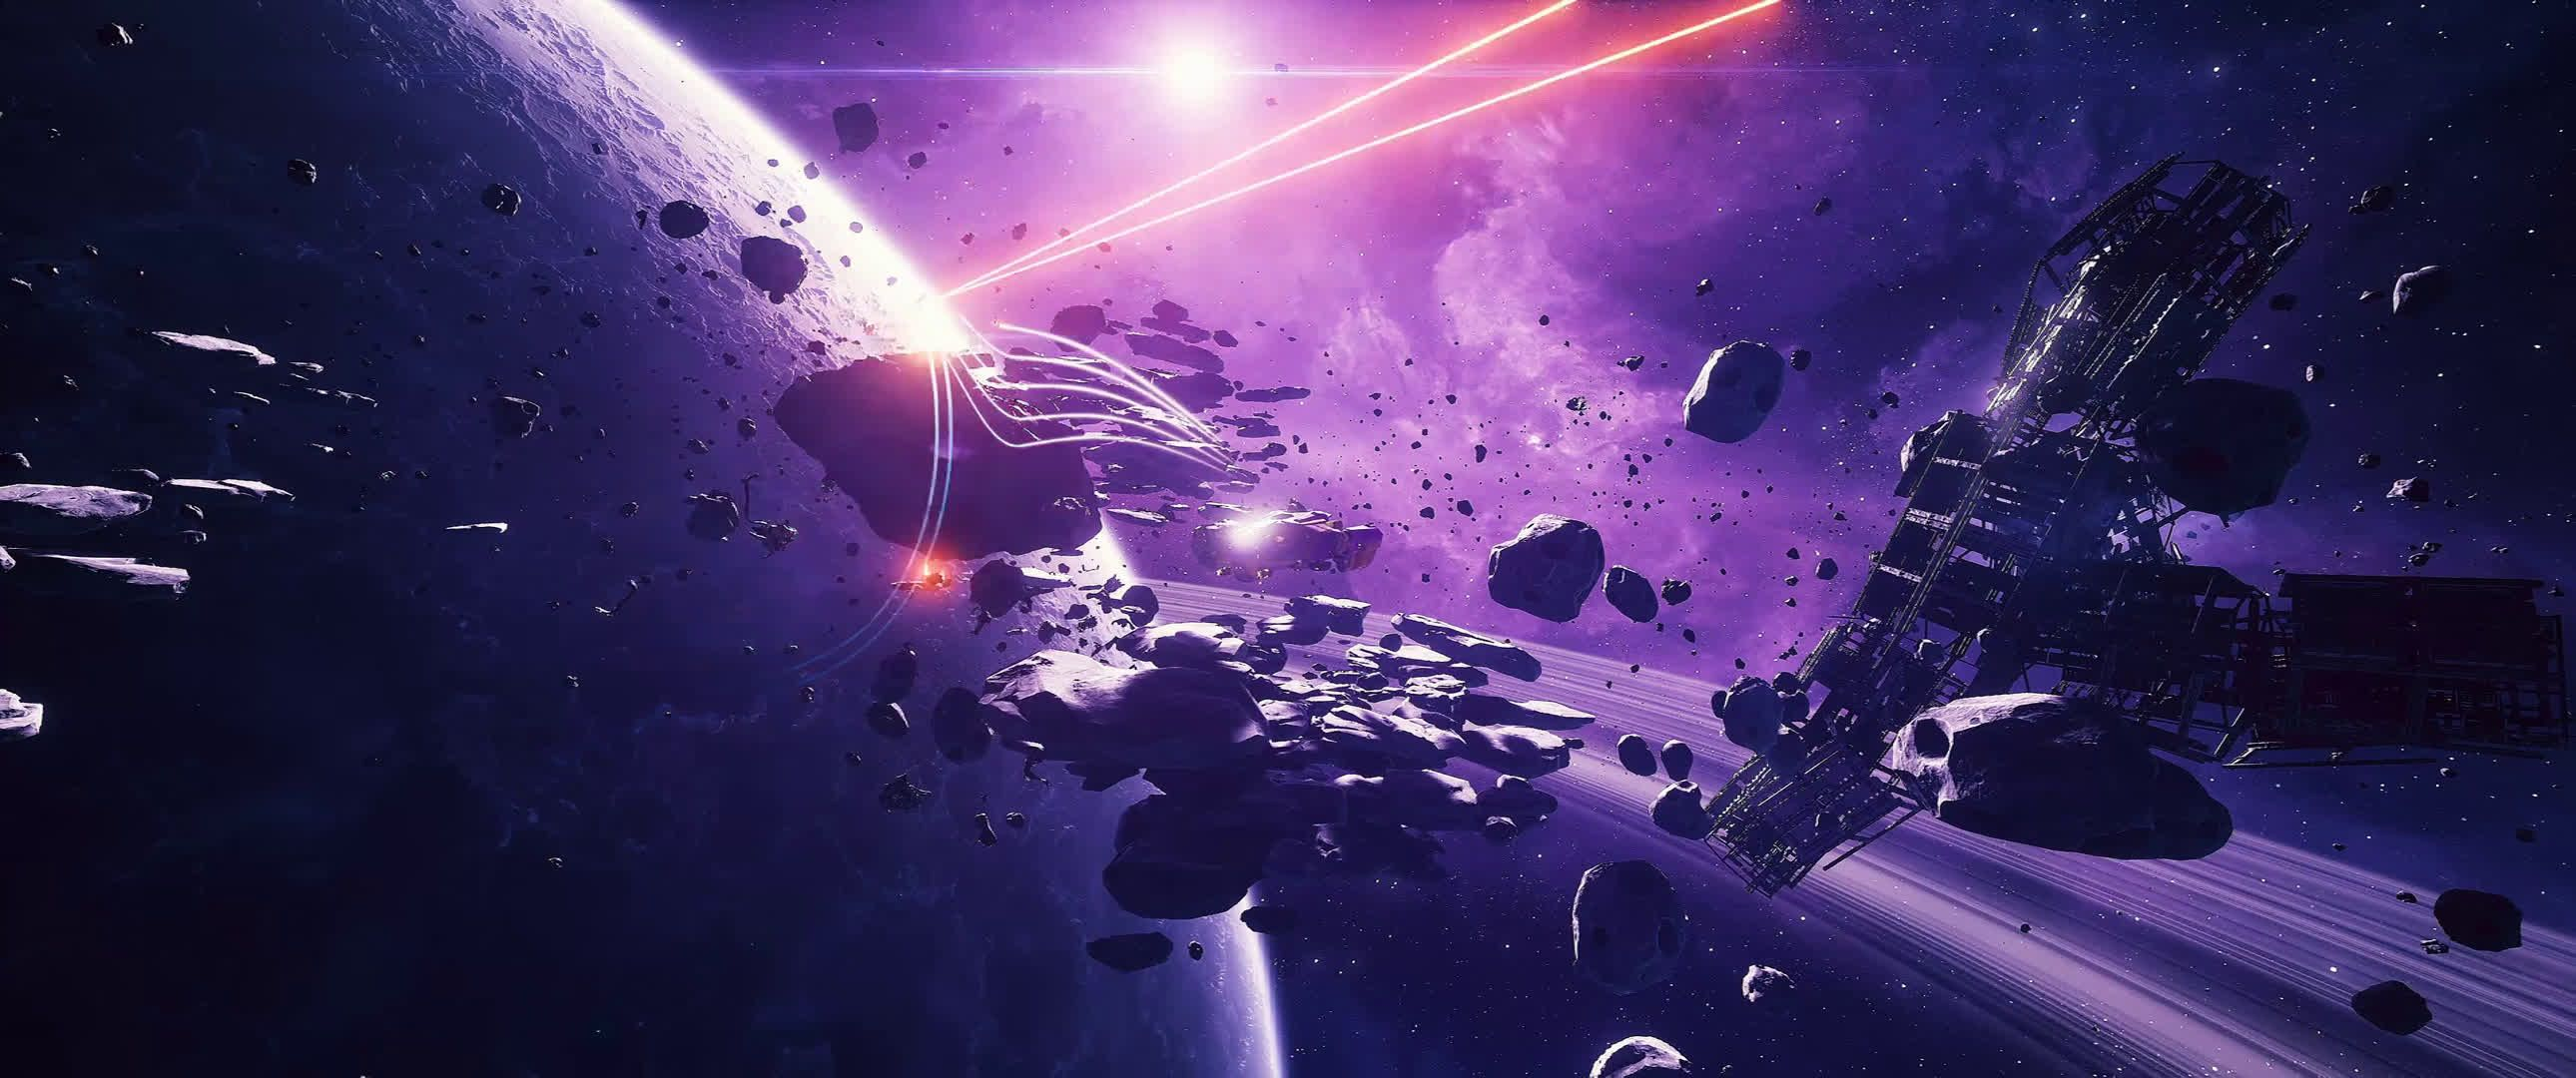 Wallpaper Live Space Fight HD in 2020 Wallpaper, Live